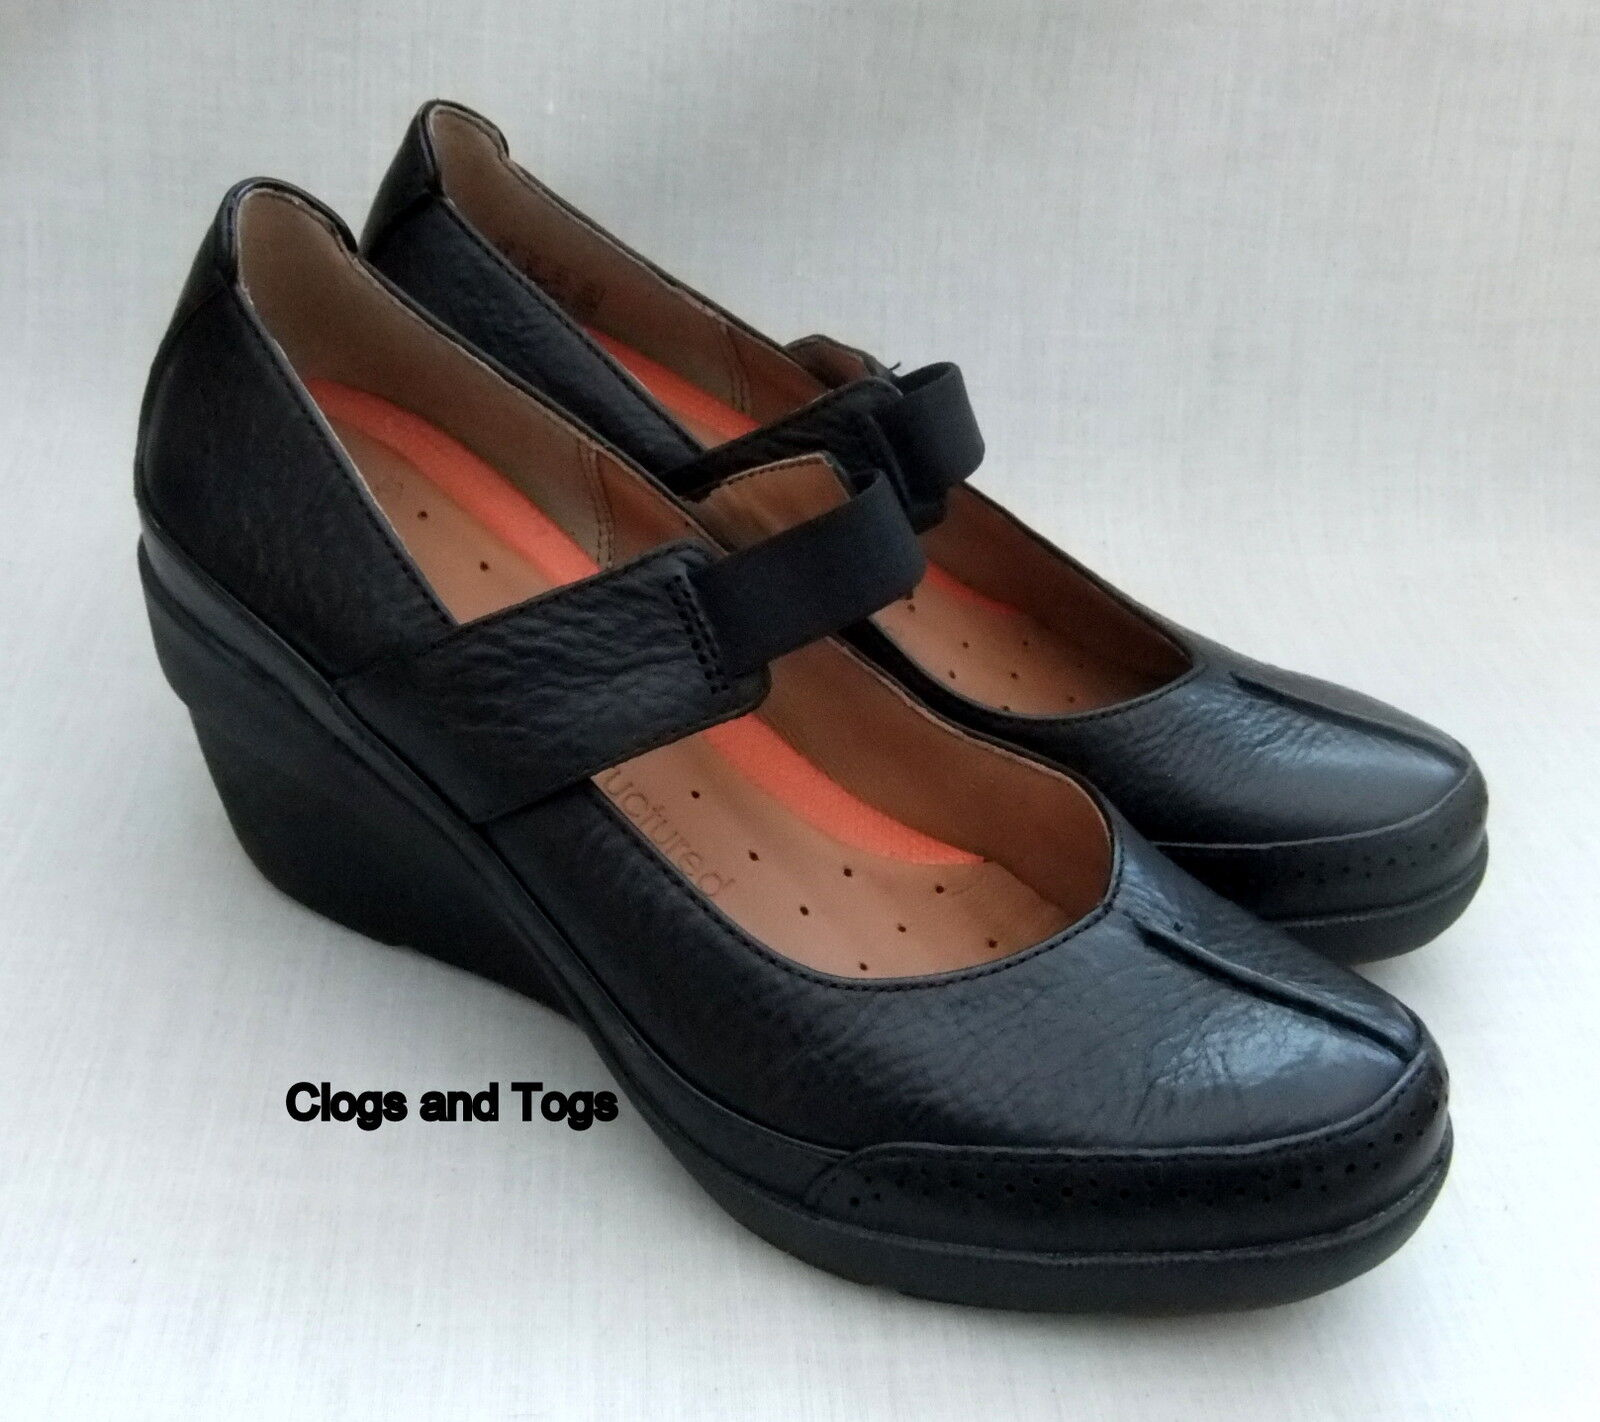 NEW CLARKS CLARKS NEW UNSTRUCTUROT UN CHELSEA Damenschuhe BLACK LEATHER WEDGE Schuhe 5c957a